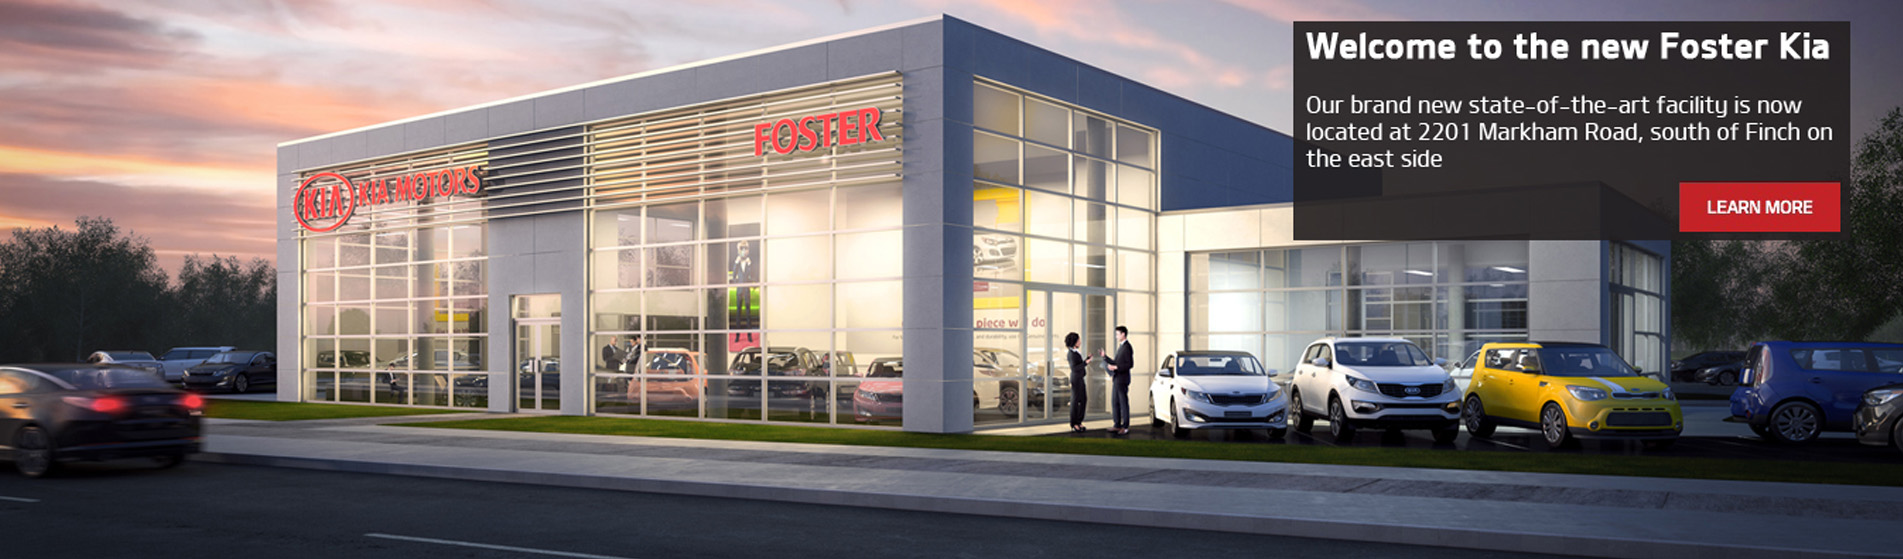 Welcome to the new foster kia. Our brand new state-of -the-art facility is now located at 2201 Markham Road, south of finch on the east side